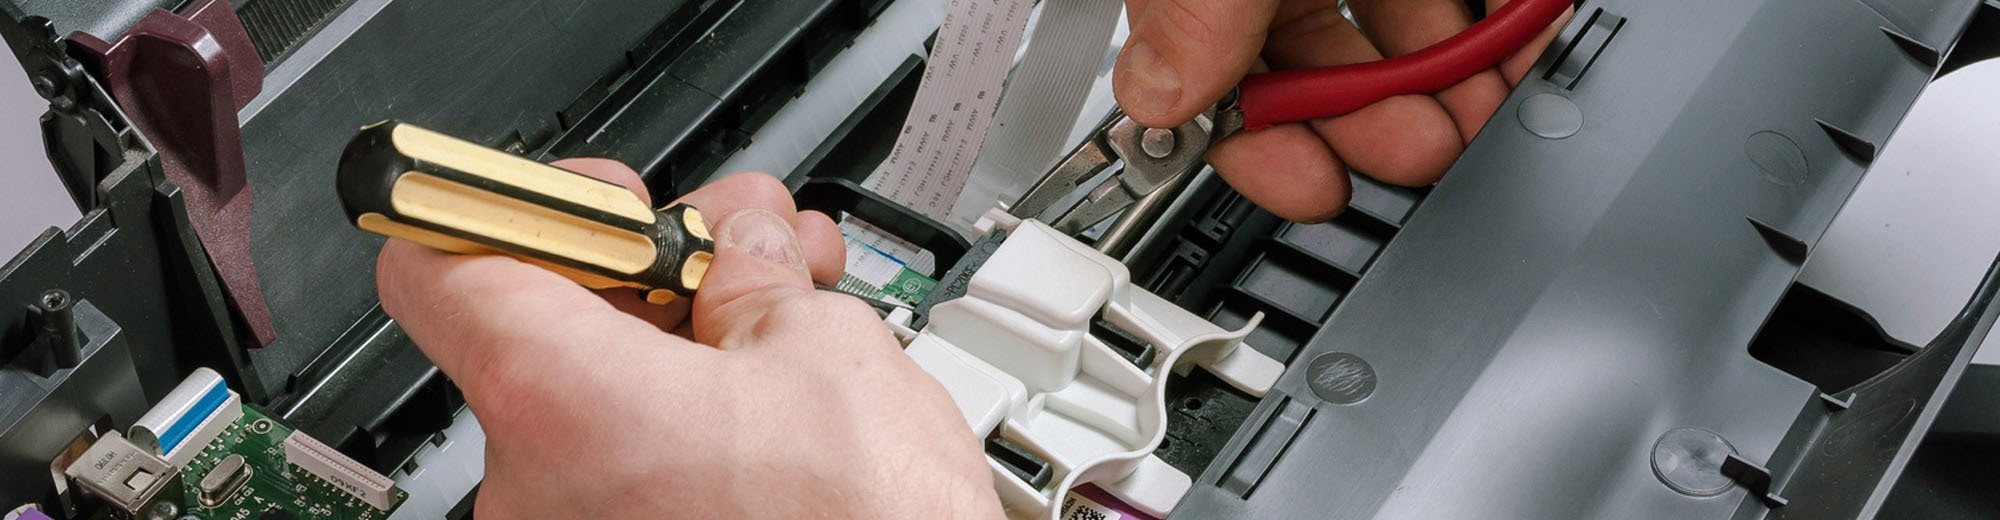 asap-banner-repairs-and-servicing